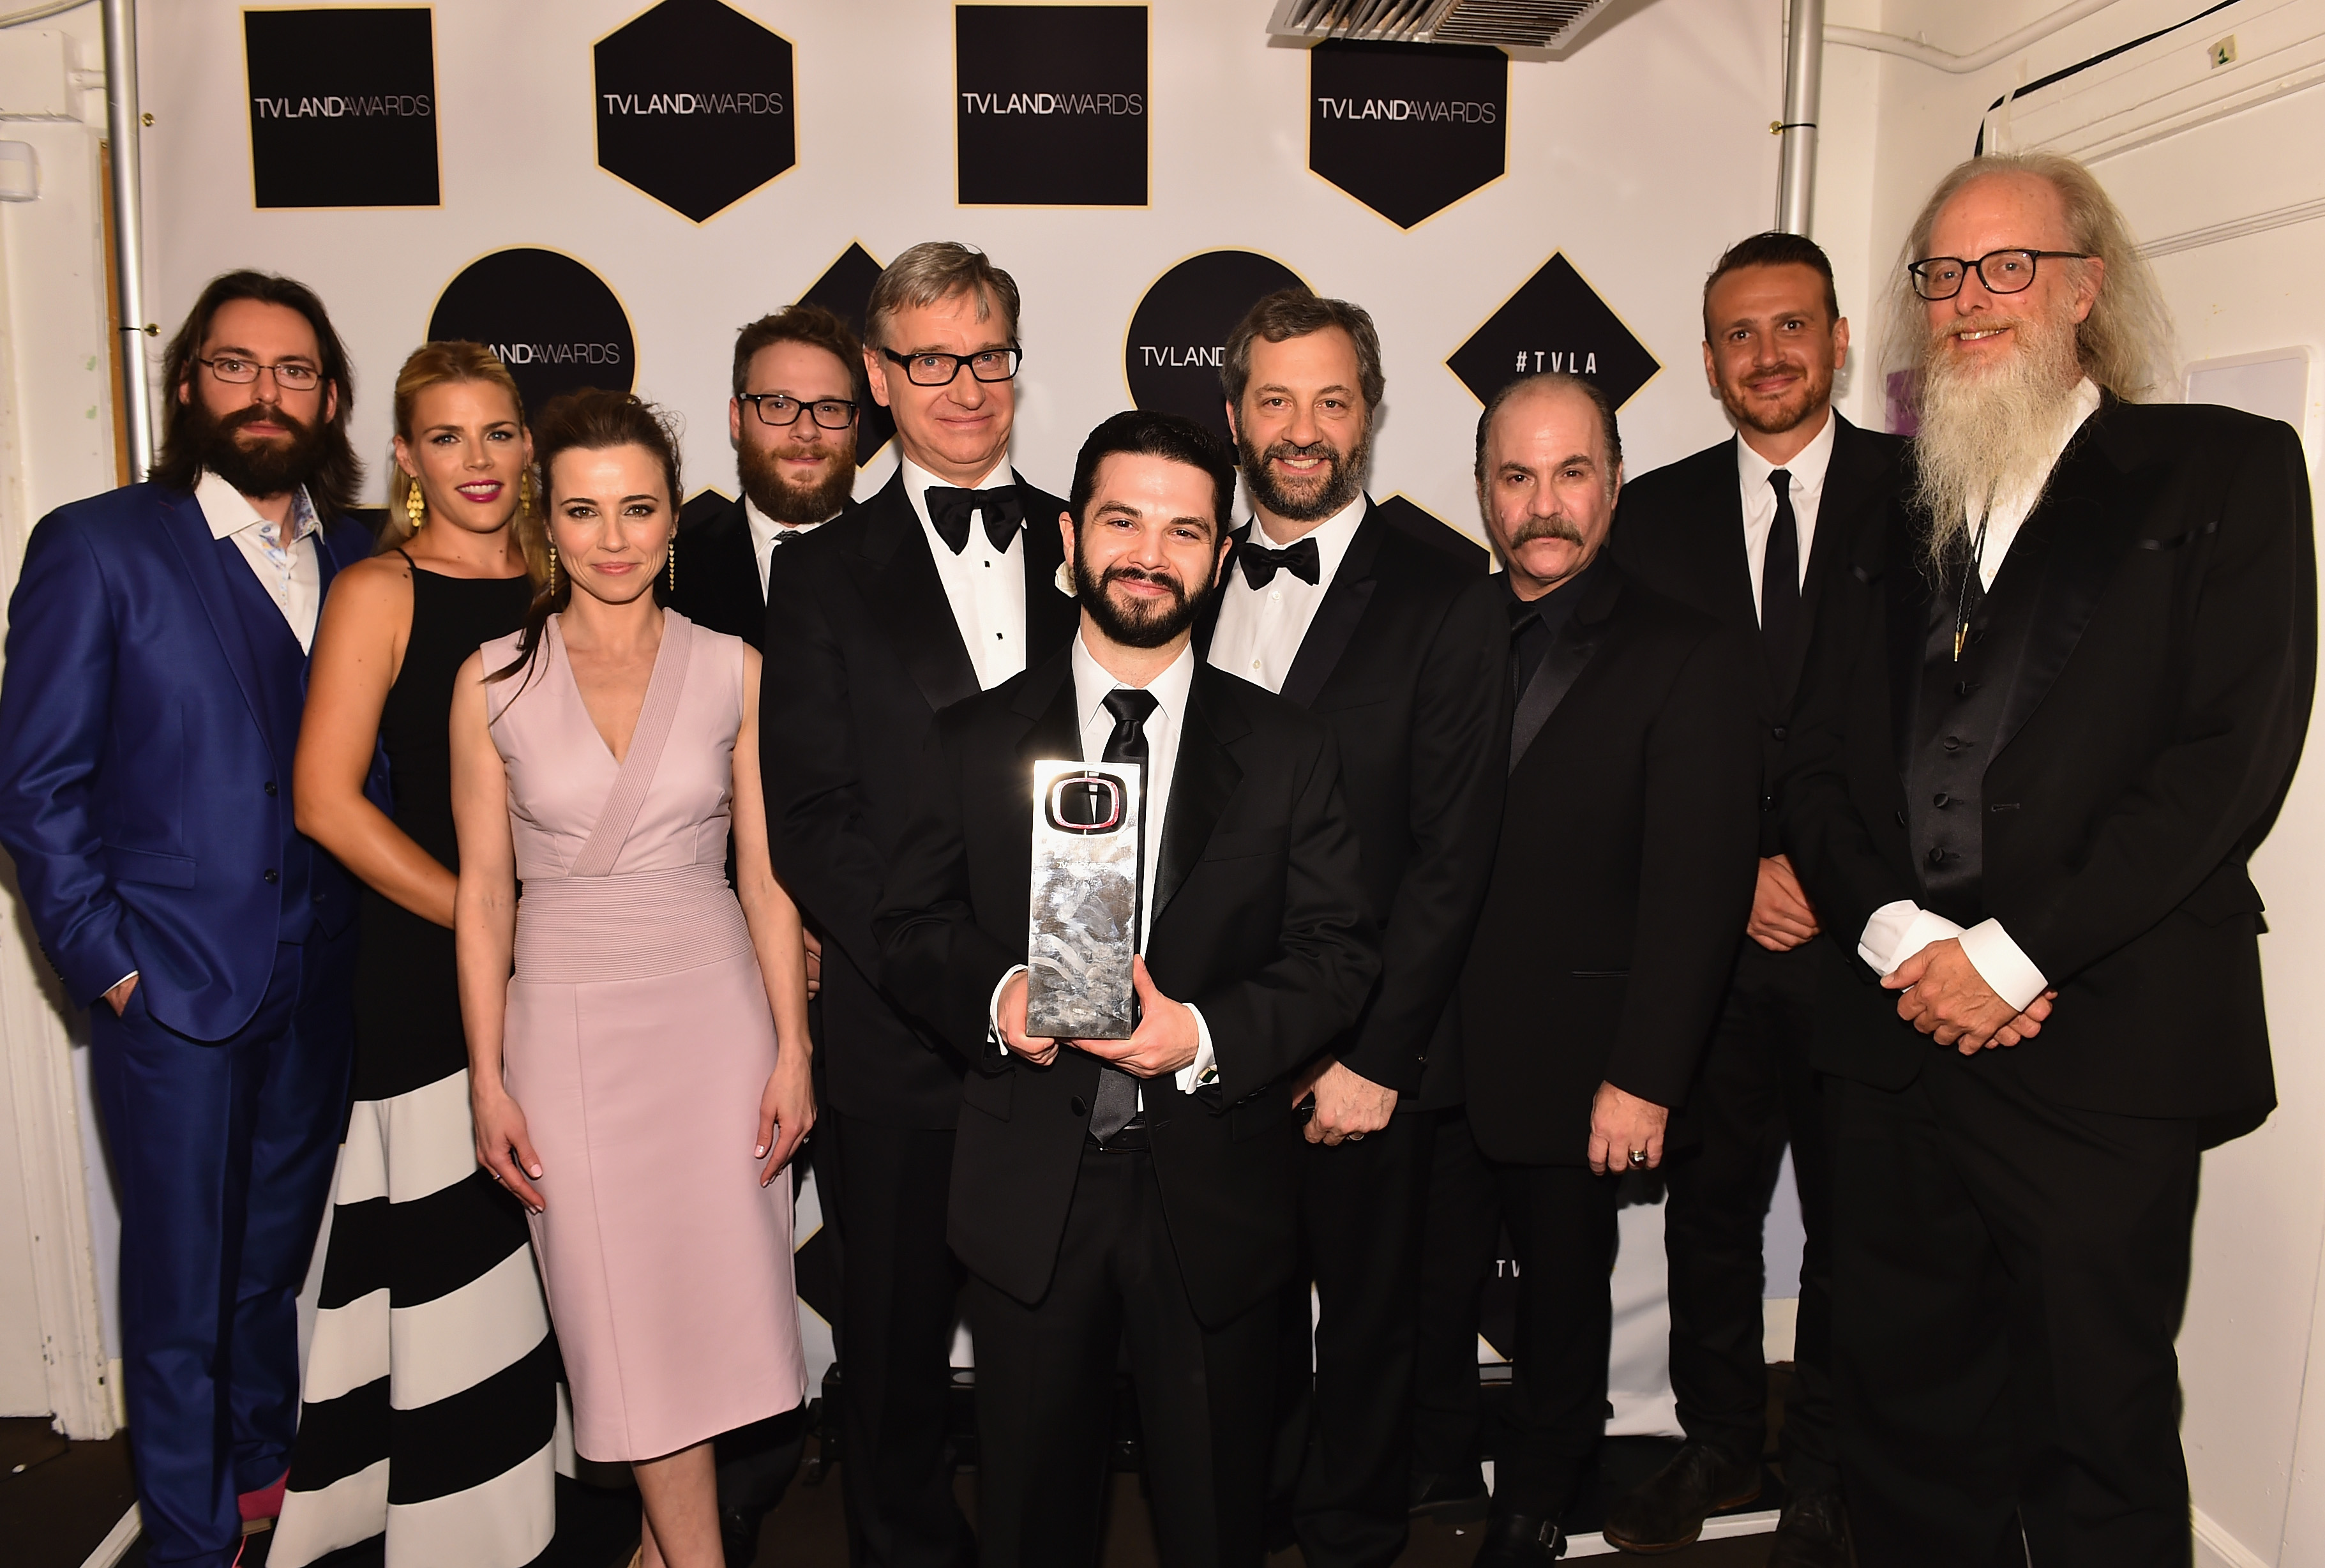 39 freaks and geeks 39 reunion at the tv land awards celebrates one of the best one season wonders. Black Bedroom Furniture Sets. Home Design Ideas